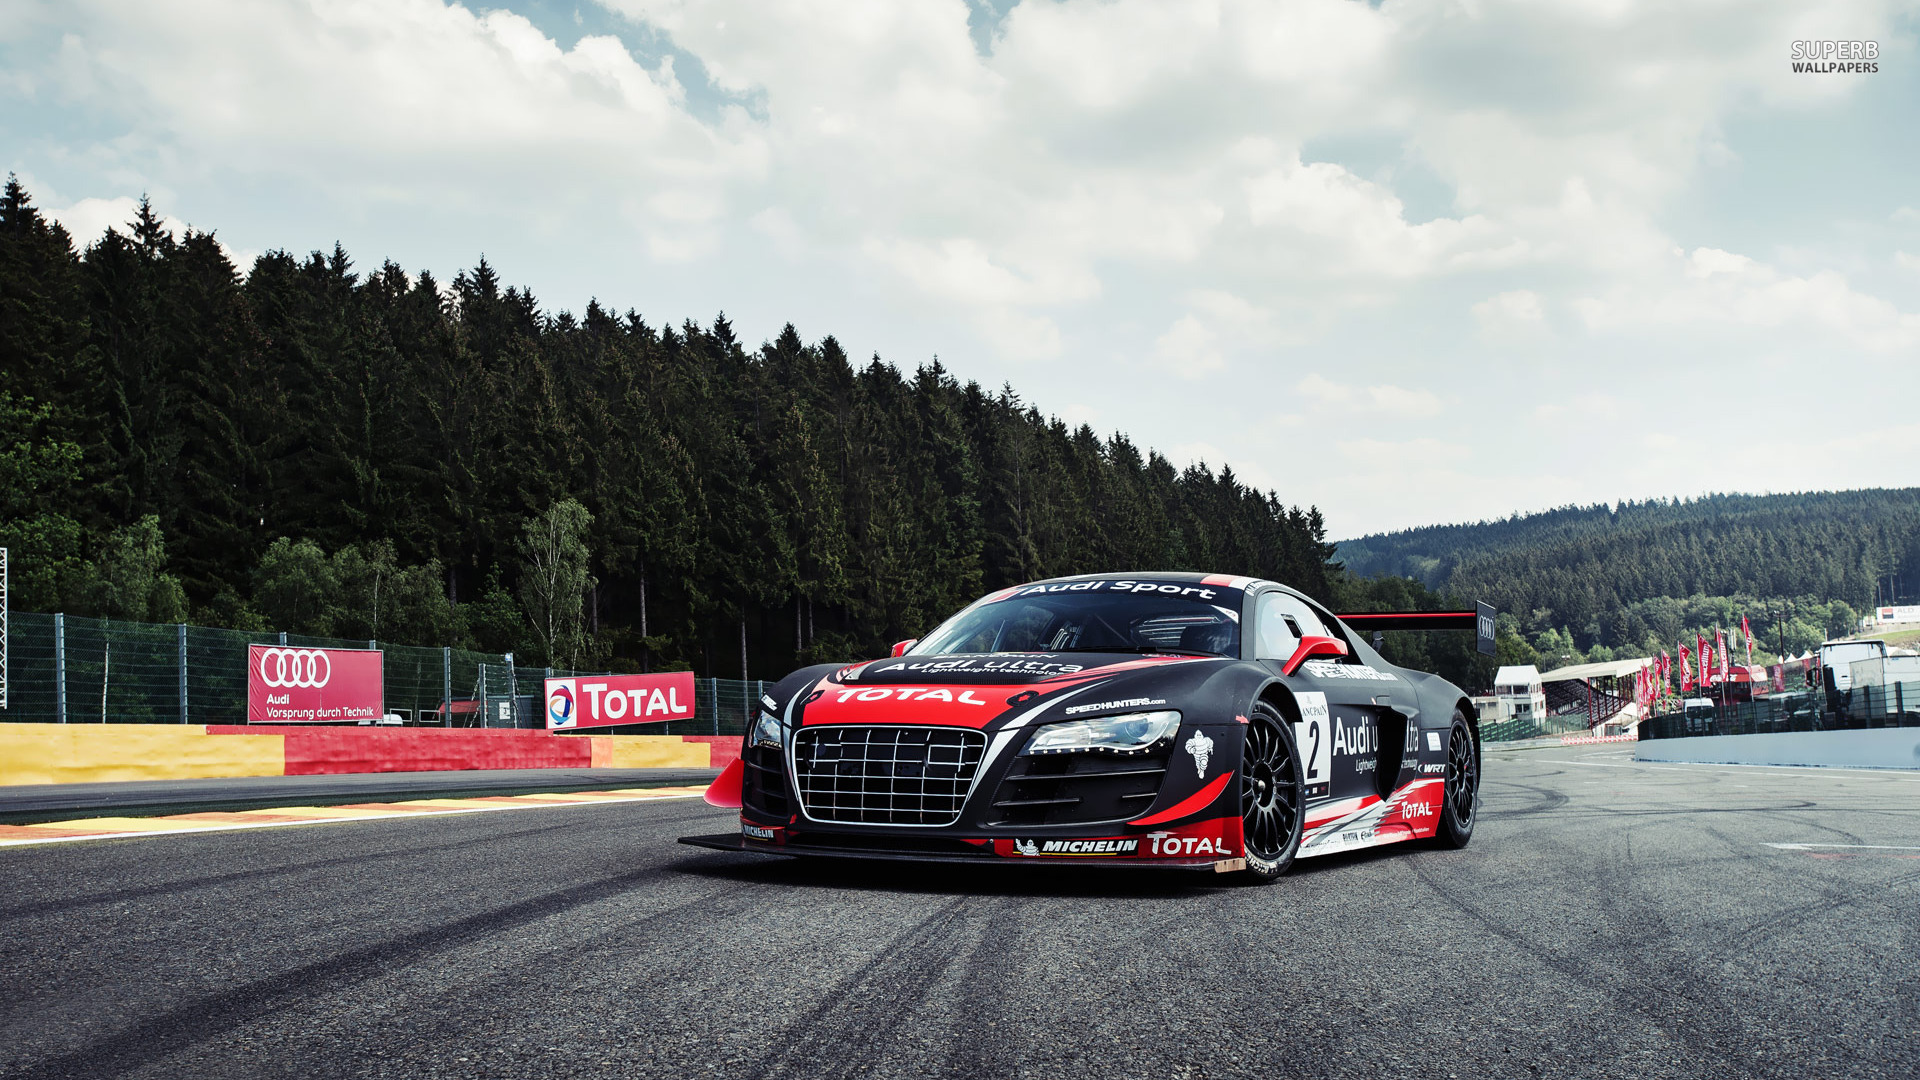 Audi Rs3 Wallpaper Hd Audi R8 Wallpapers Pictures Images